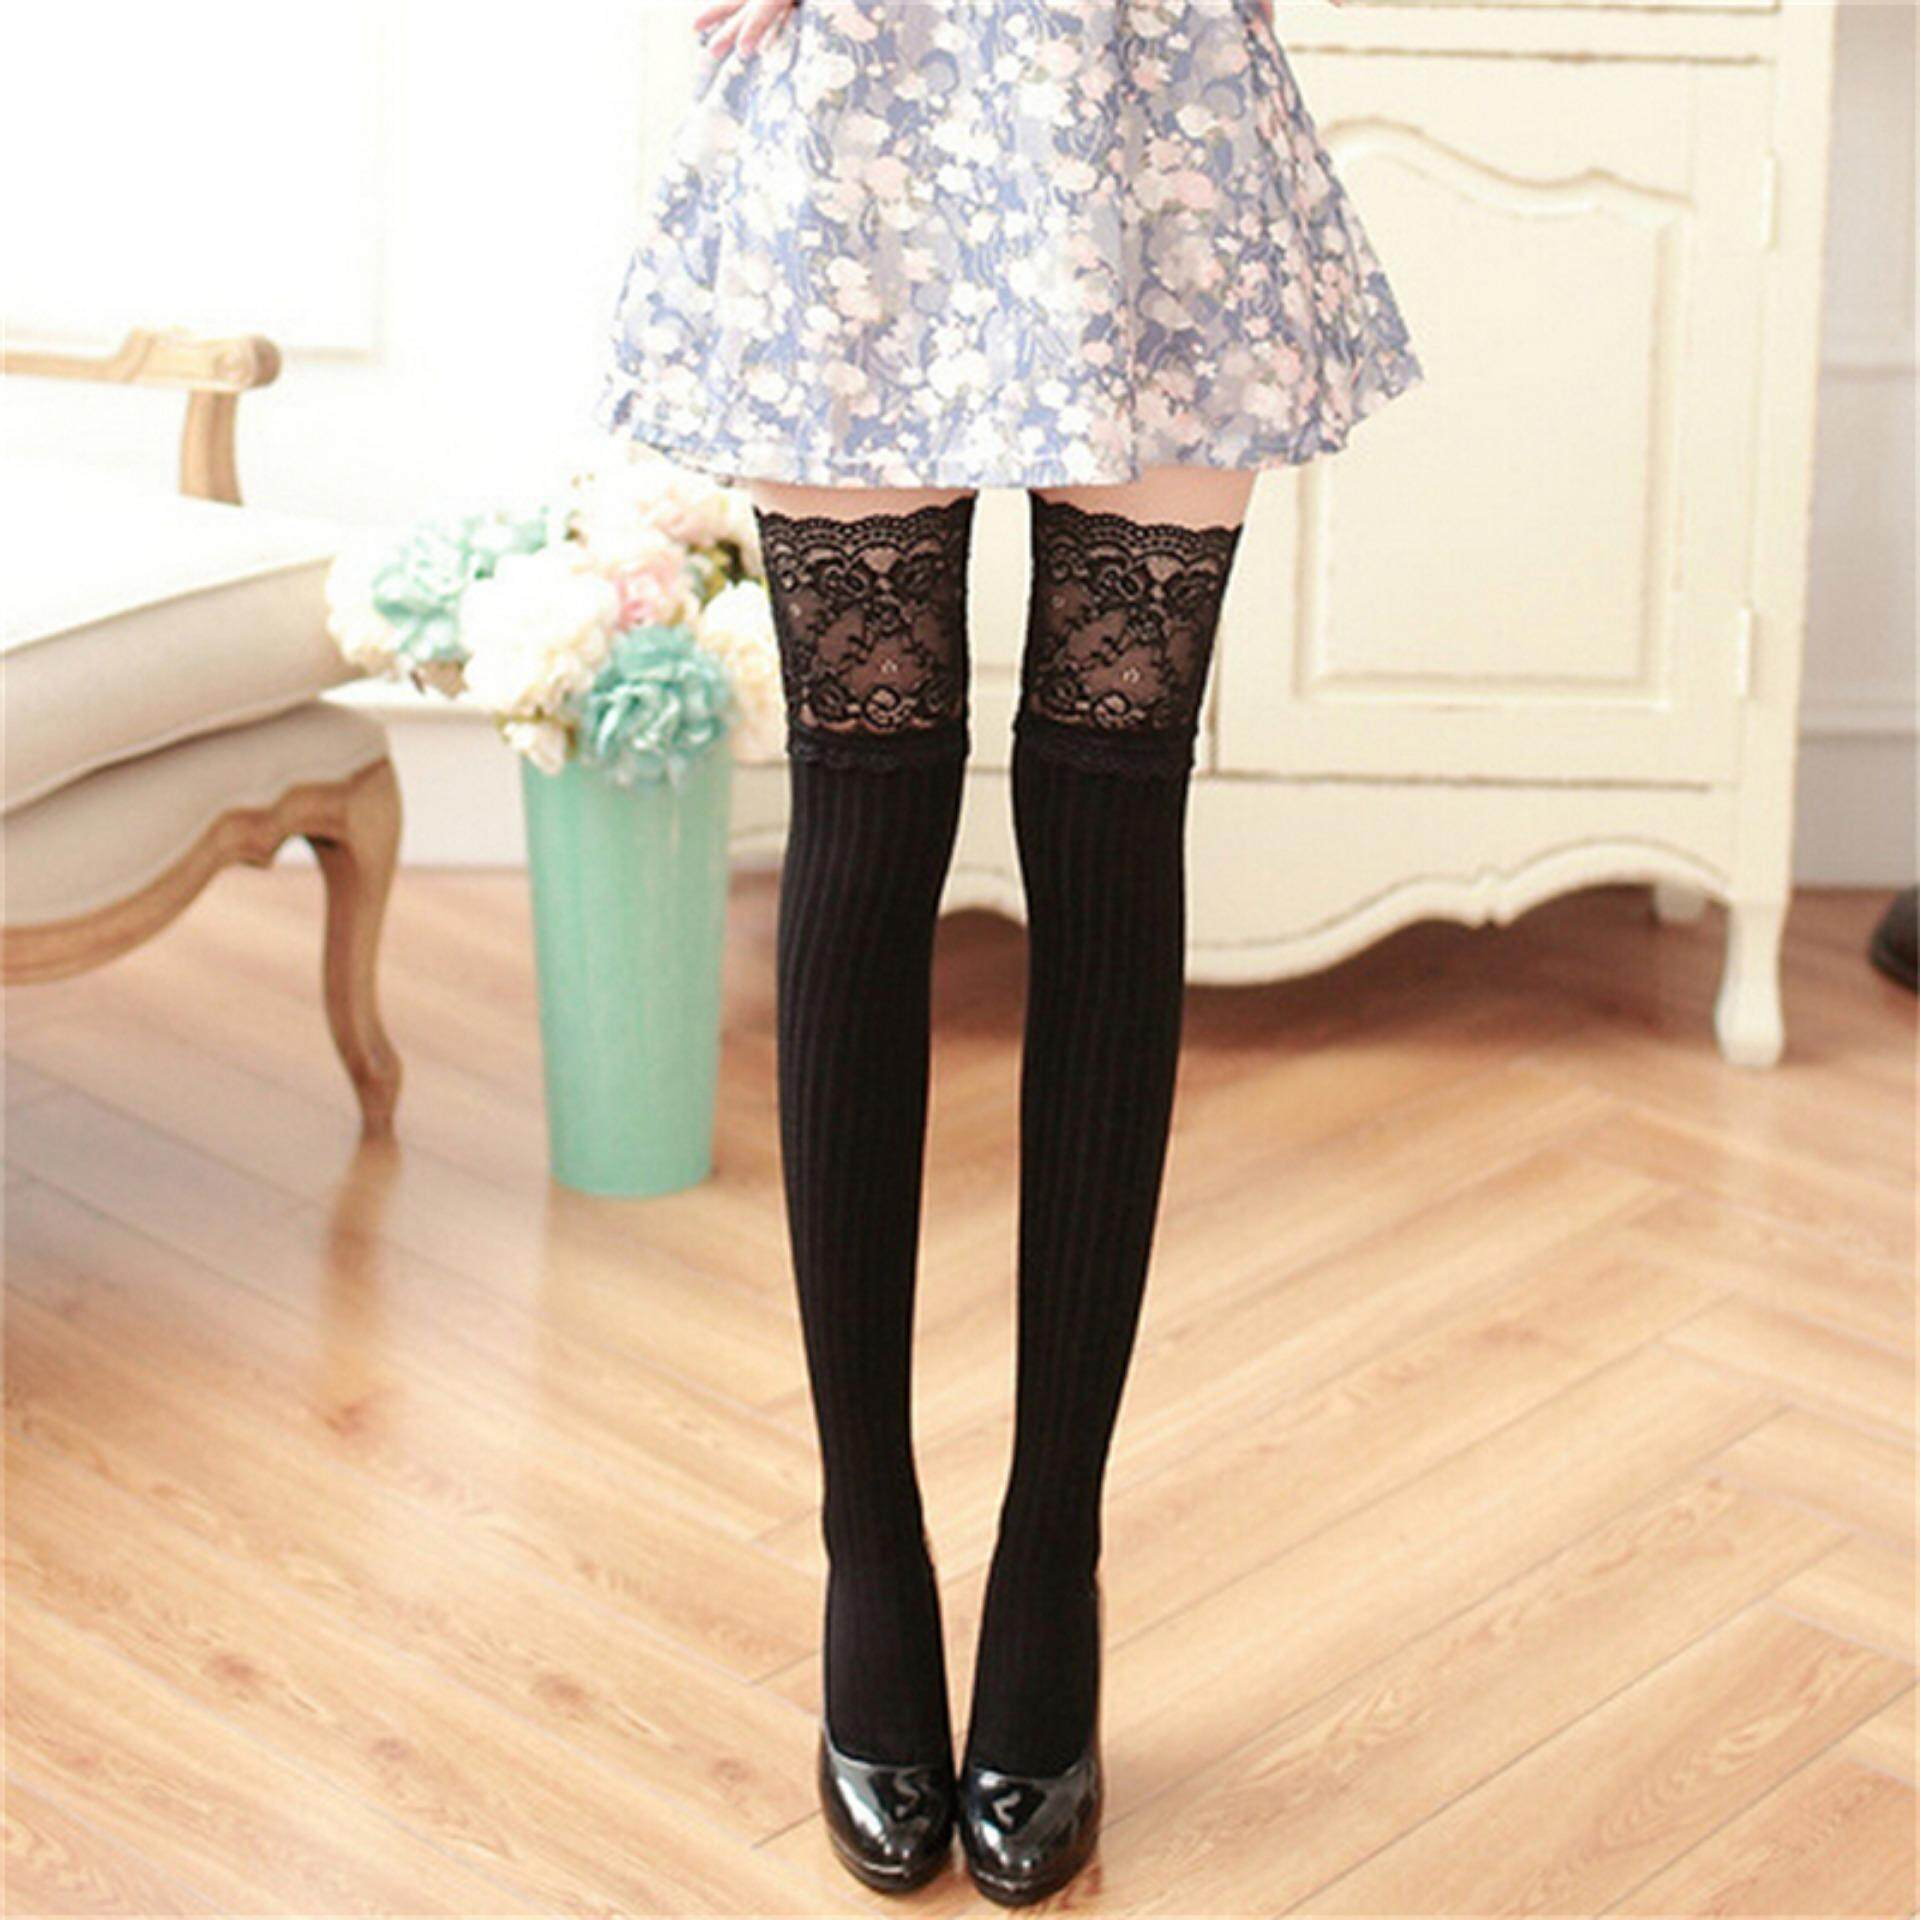 266fefd538f Women Knitting Lace Cotton Over Knee Thigh Stockings High Socks Pantyhose  Tights Black - intl